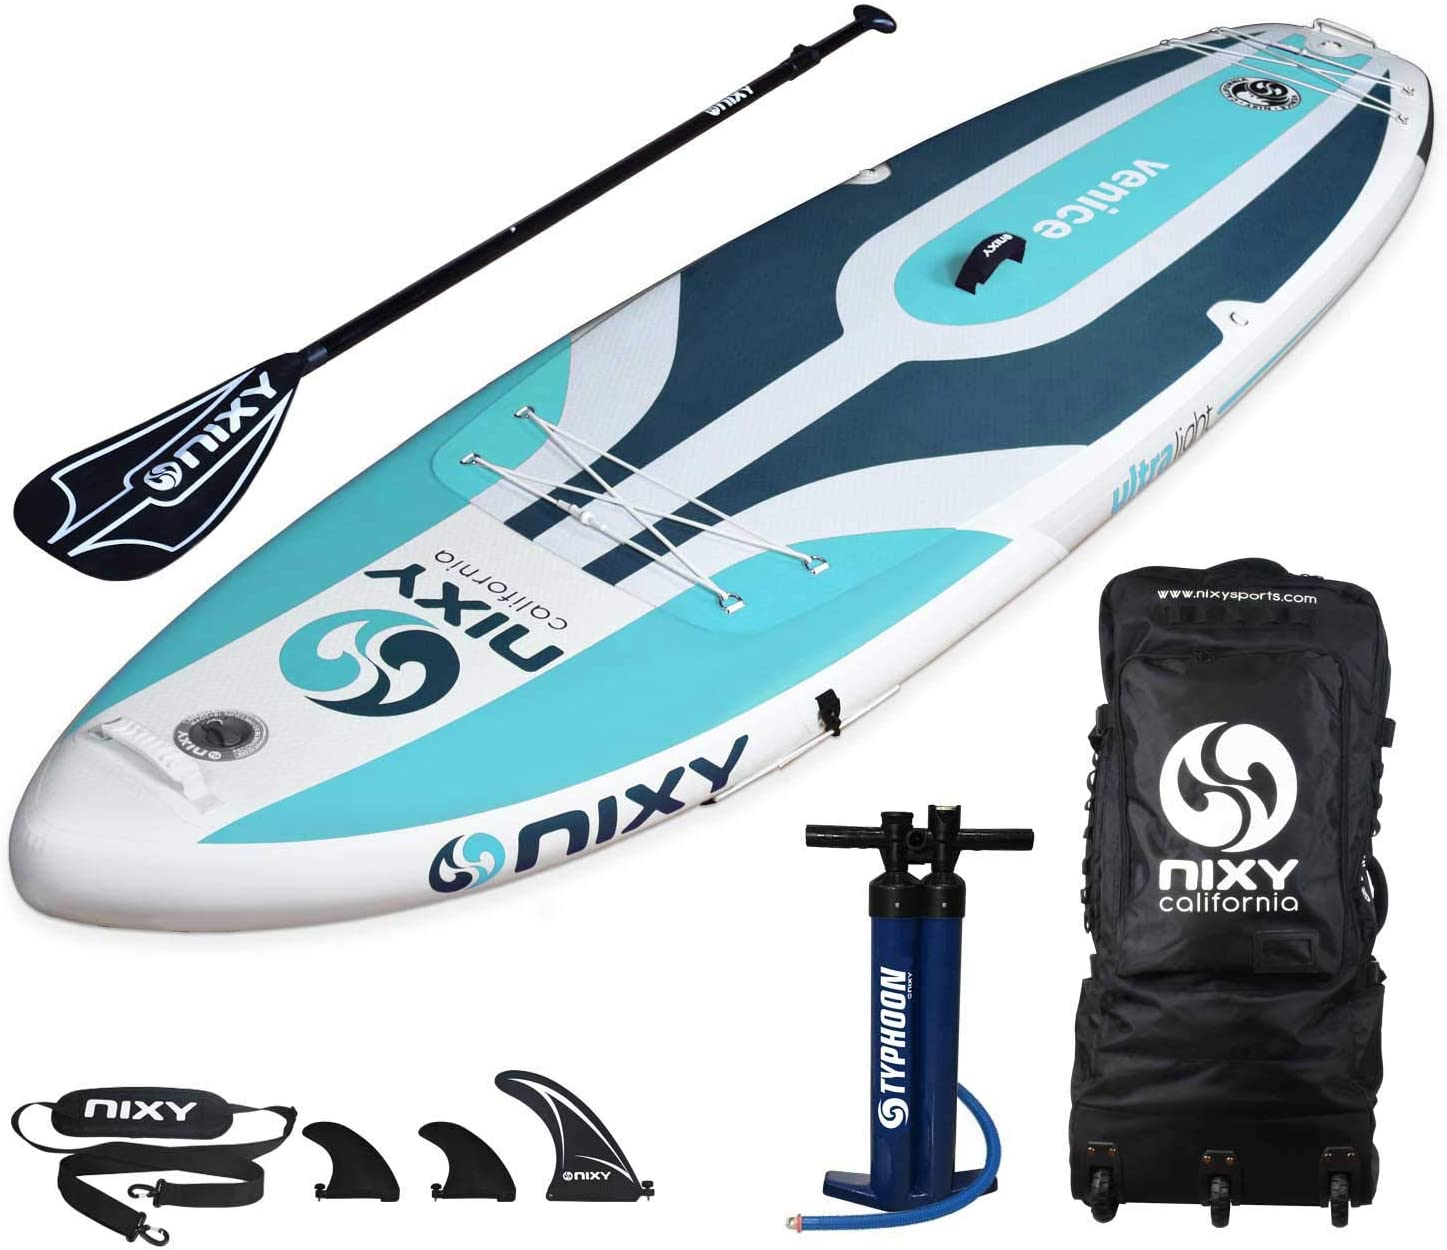 NIXY Venice Inflatable Stand Up Paddle Board. Yoga Fitness Beginner Lightweight Premium SUP built with the Latest Dropstitch Technology. All Accessories included Paddle, Leash, Pump, Shoulder Strap, Carry Bag 10 6 x 34 x 6 Youth and Adult Outdoor Sports